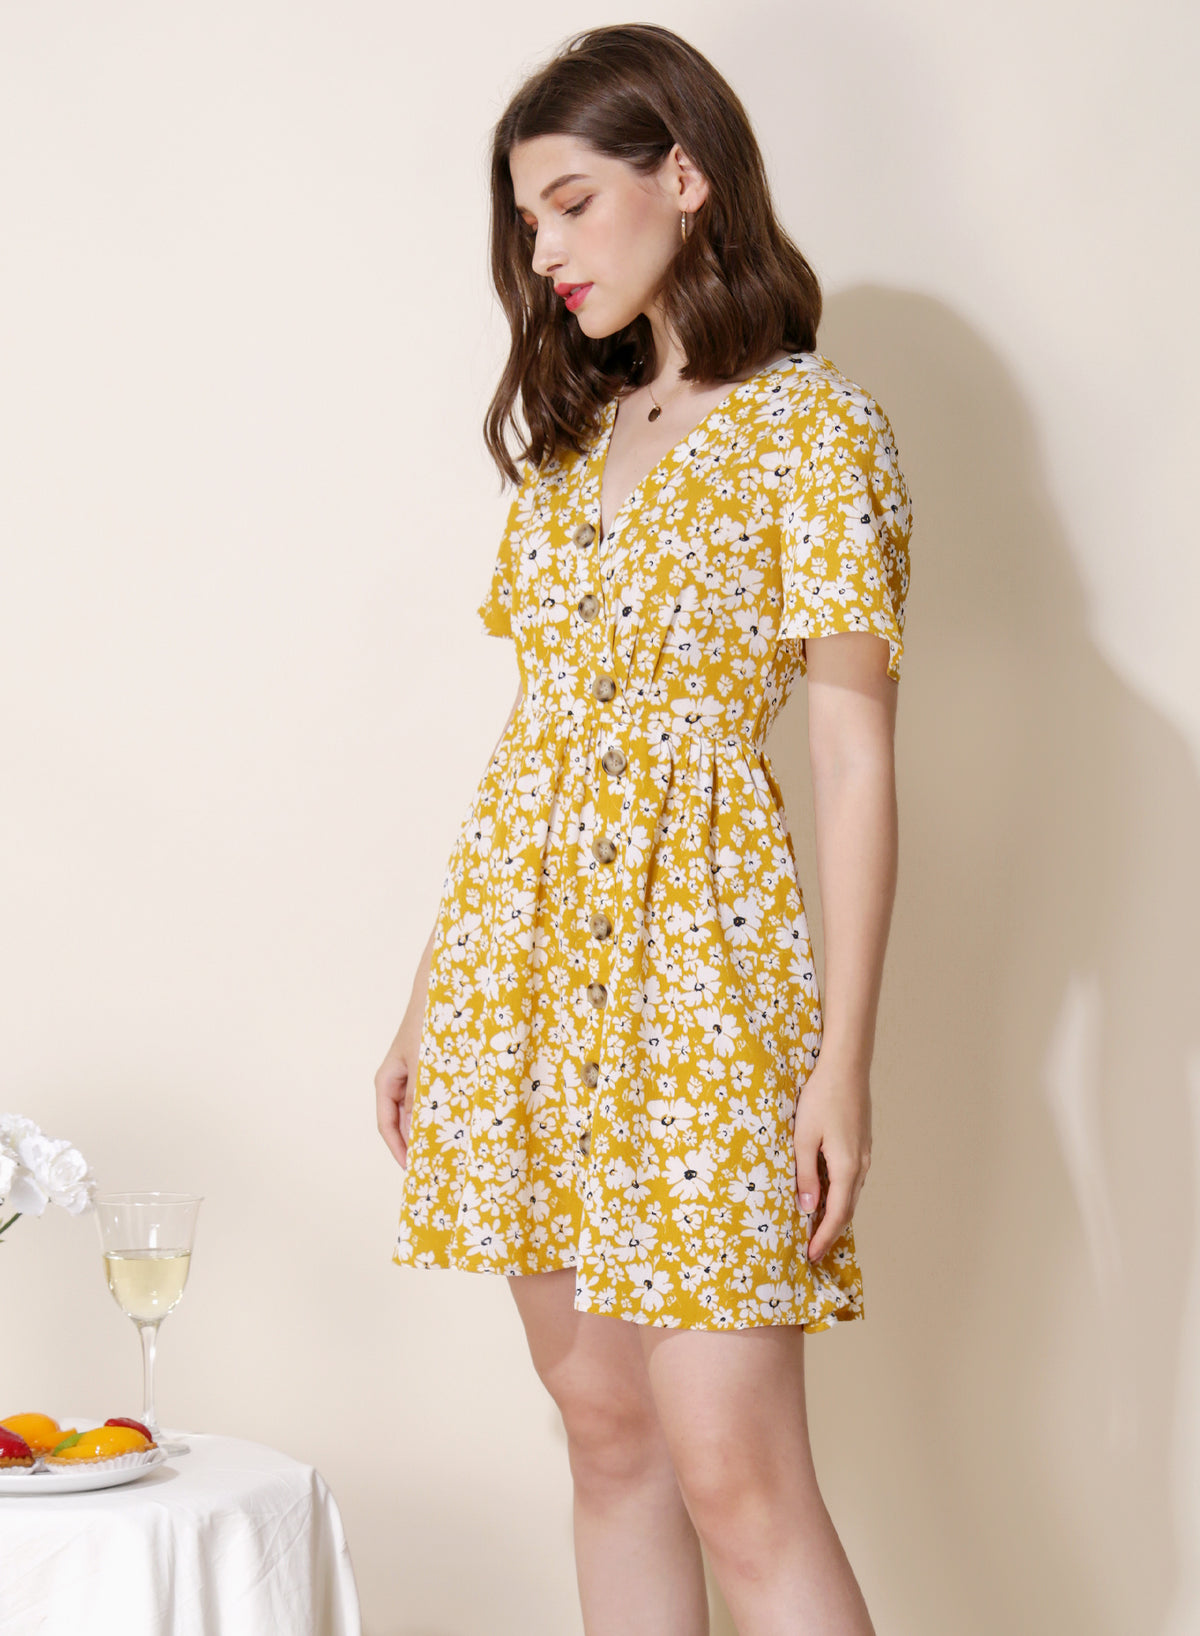 Riviera Button Front Floral Dress (Yellow) at $ 43.50 only sold at And Well Dressed Online Fashion Store Singapore